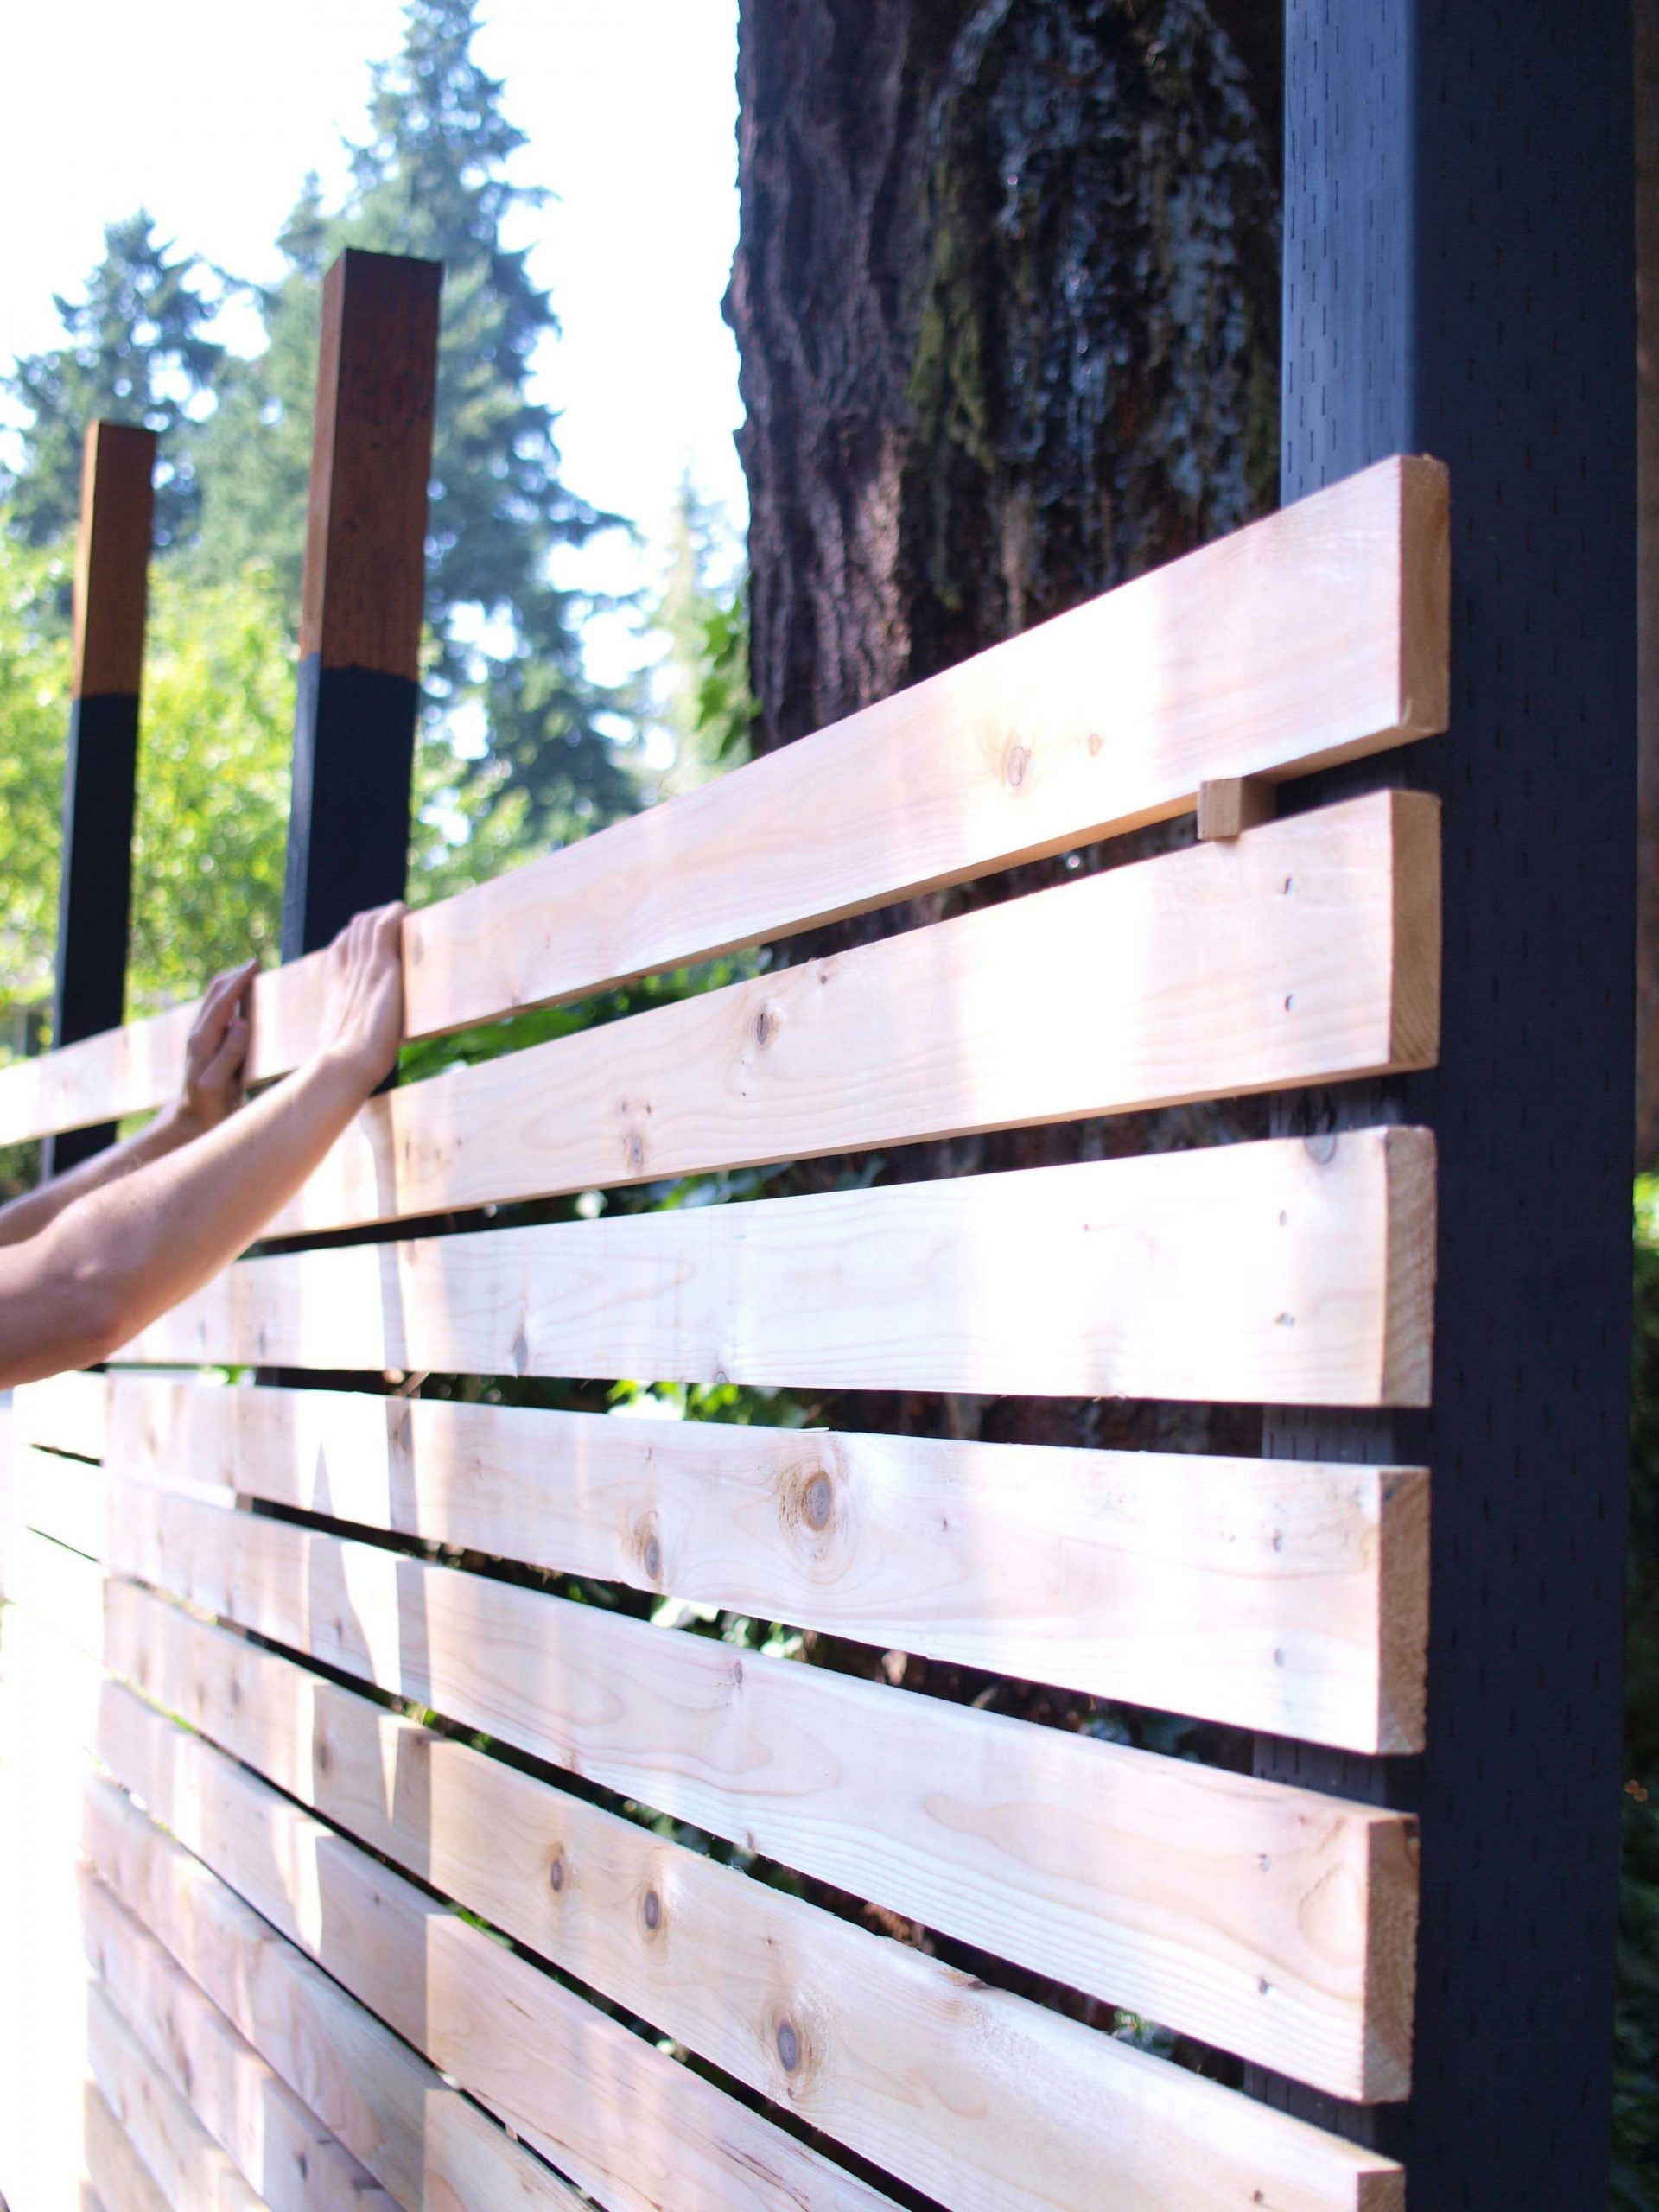 How To Build A Diy Backyard Fence, Part Ii | Cloture Jardin ... intérieur Separation Jardin Pas Cher